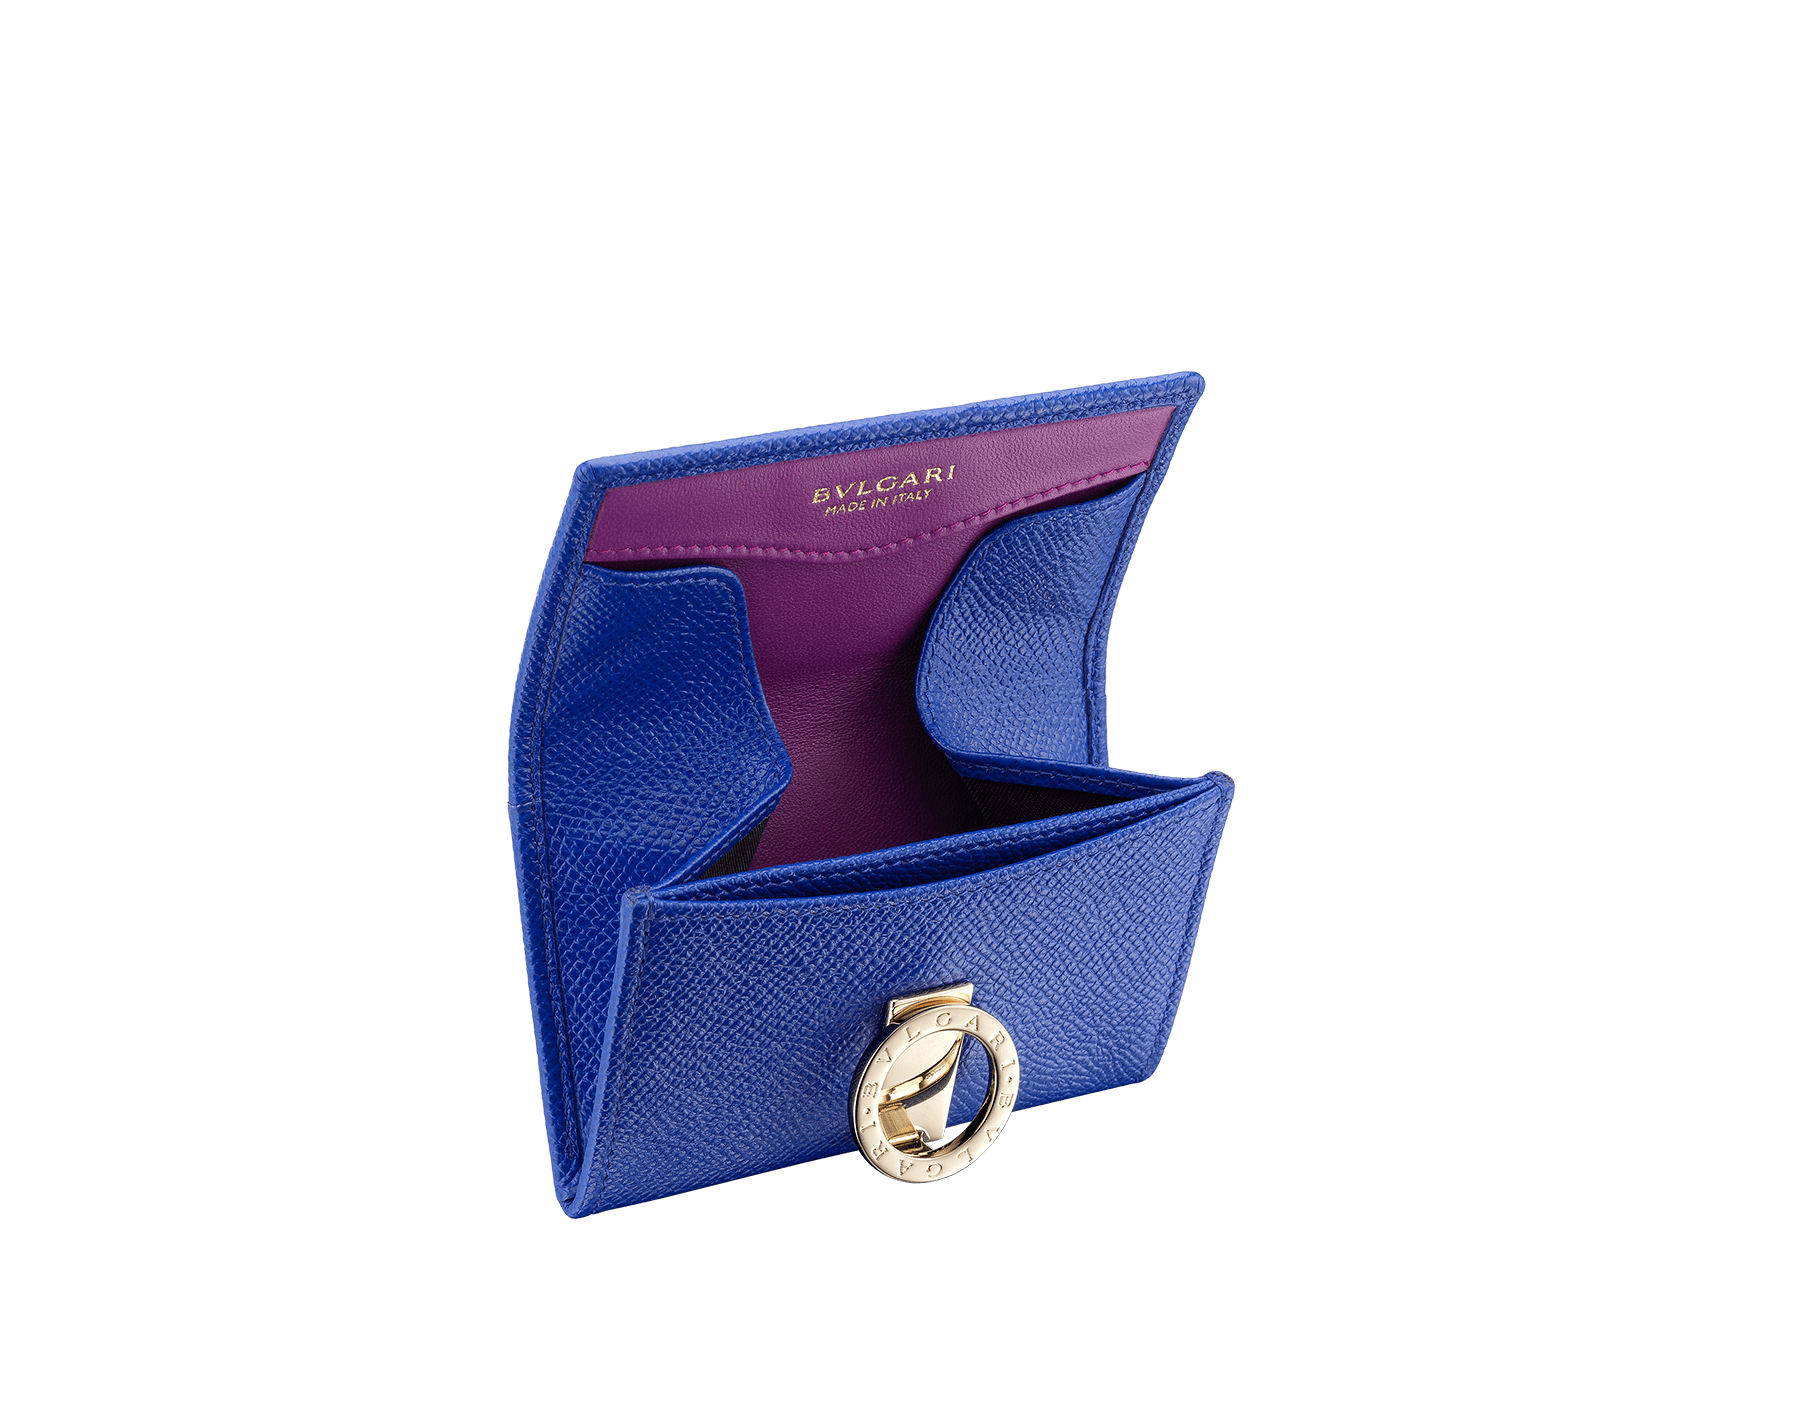 BVLGARI BVLGARI coin purse in cobalt tourmaline grain calf leather and aster amethyst nappa leather. Iconic logo closure clip in light gold plated brass 579-WLT-S-RECT image 2